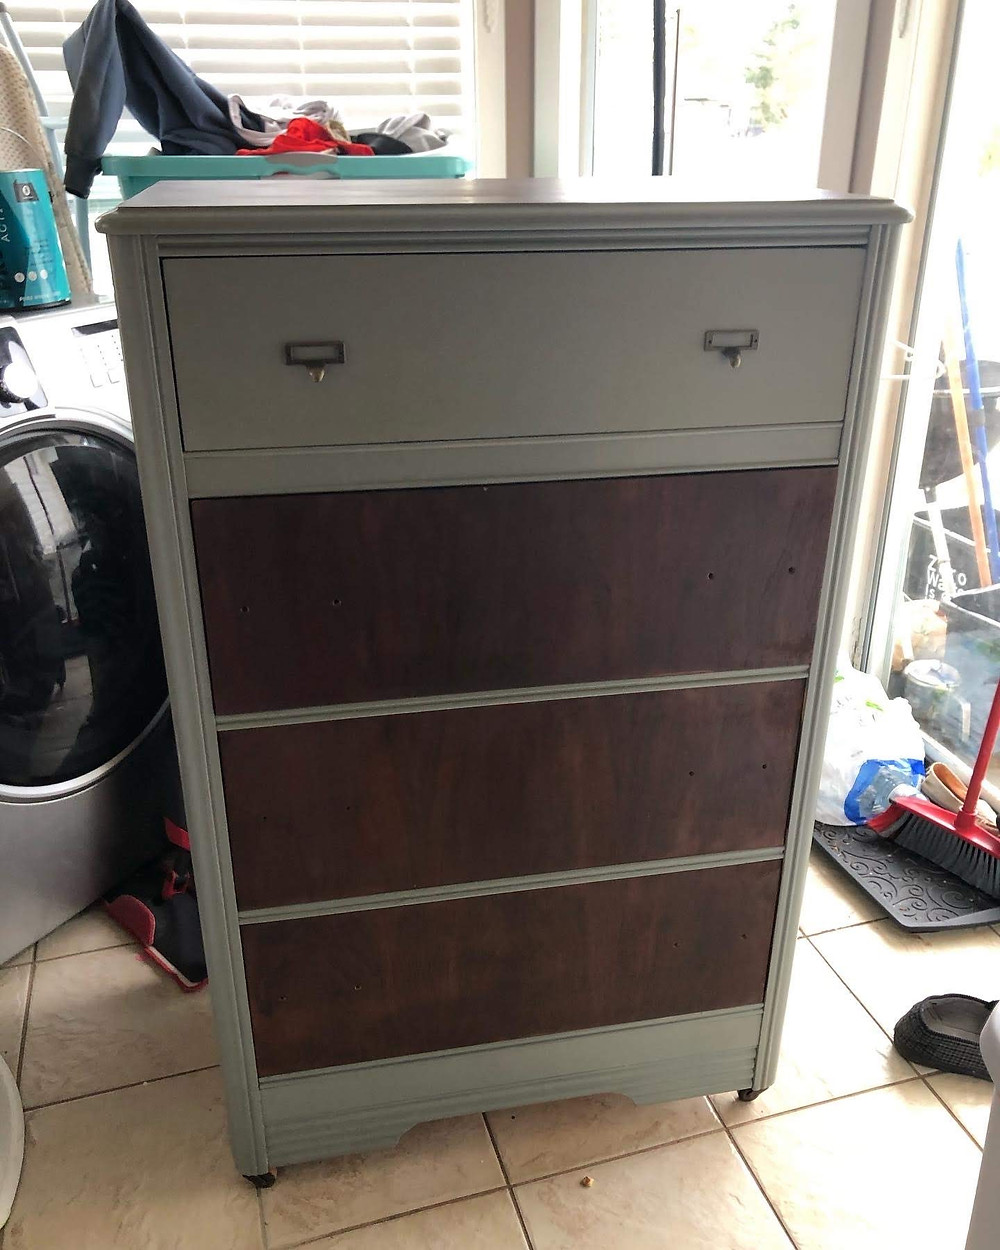 Before I had decided to rid this dresser of veneer